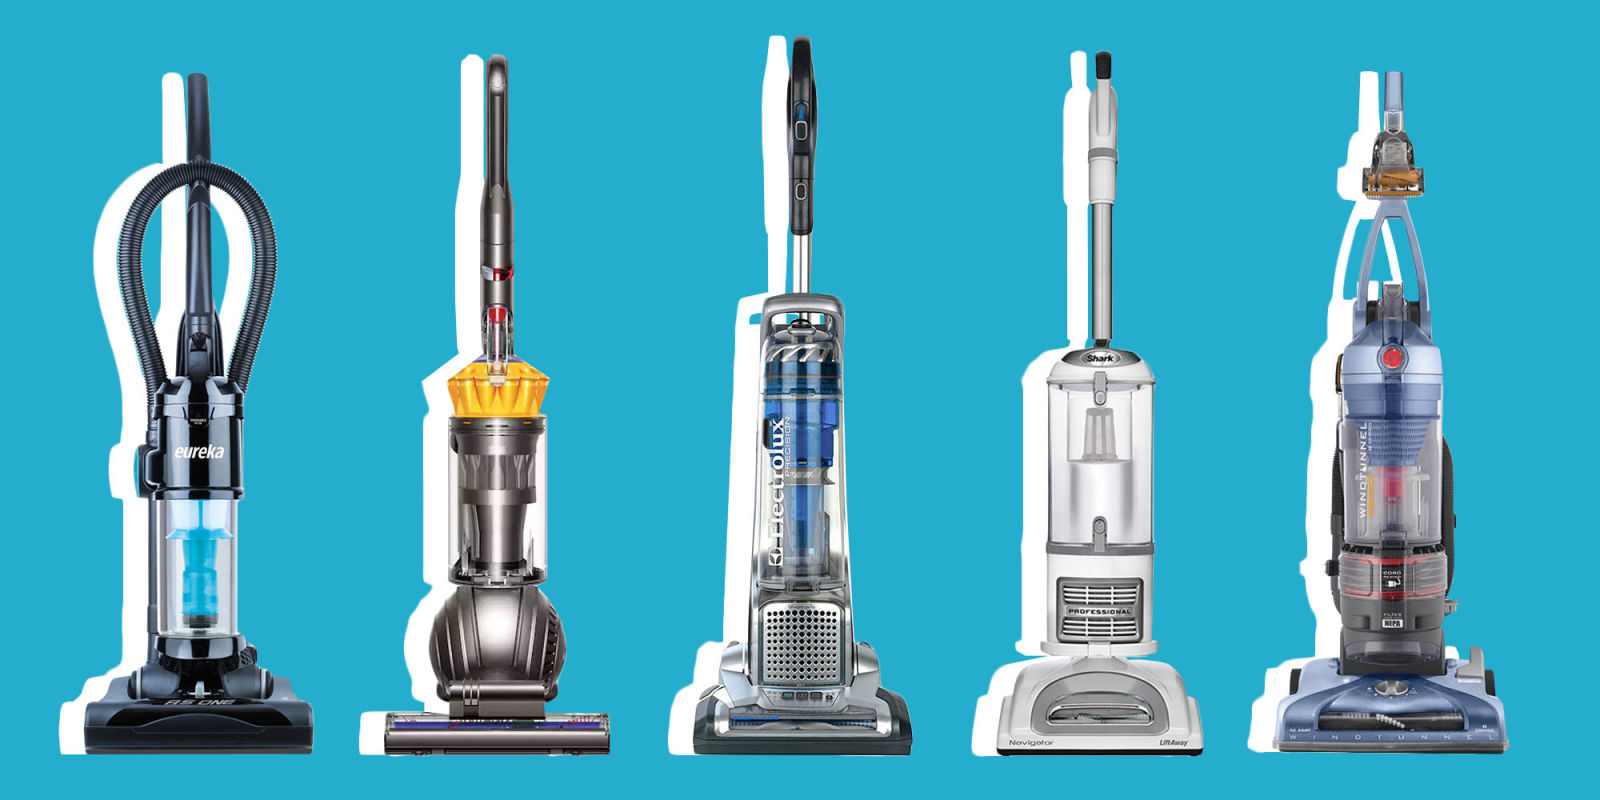 17 best vacuum cleaners of 2017 reviews of dyson shark hoover - Top Ranked Vacuum Cleaners